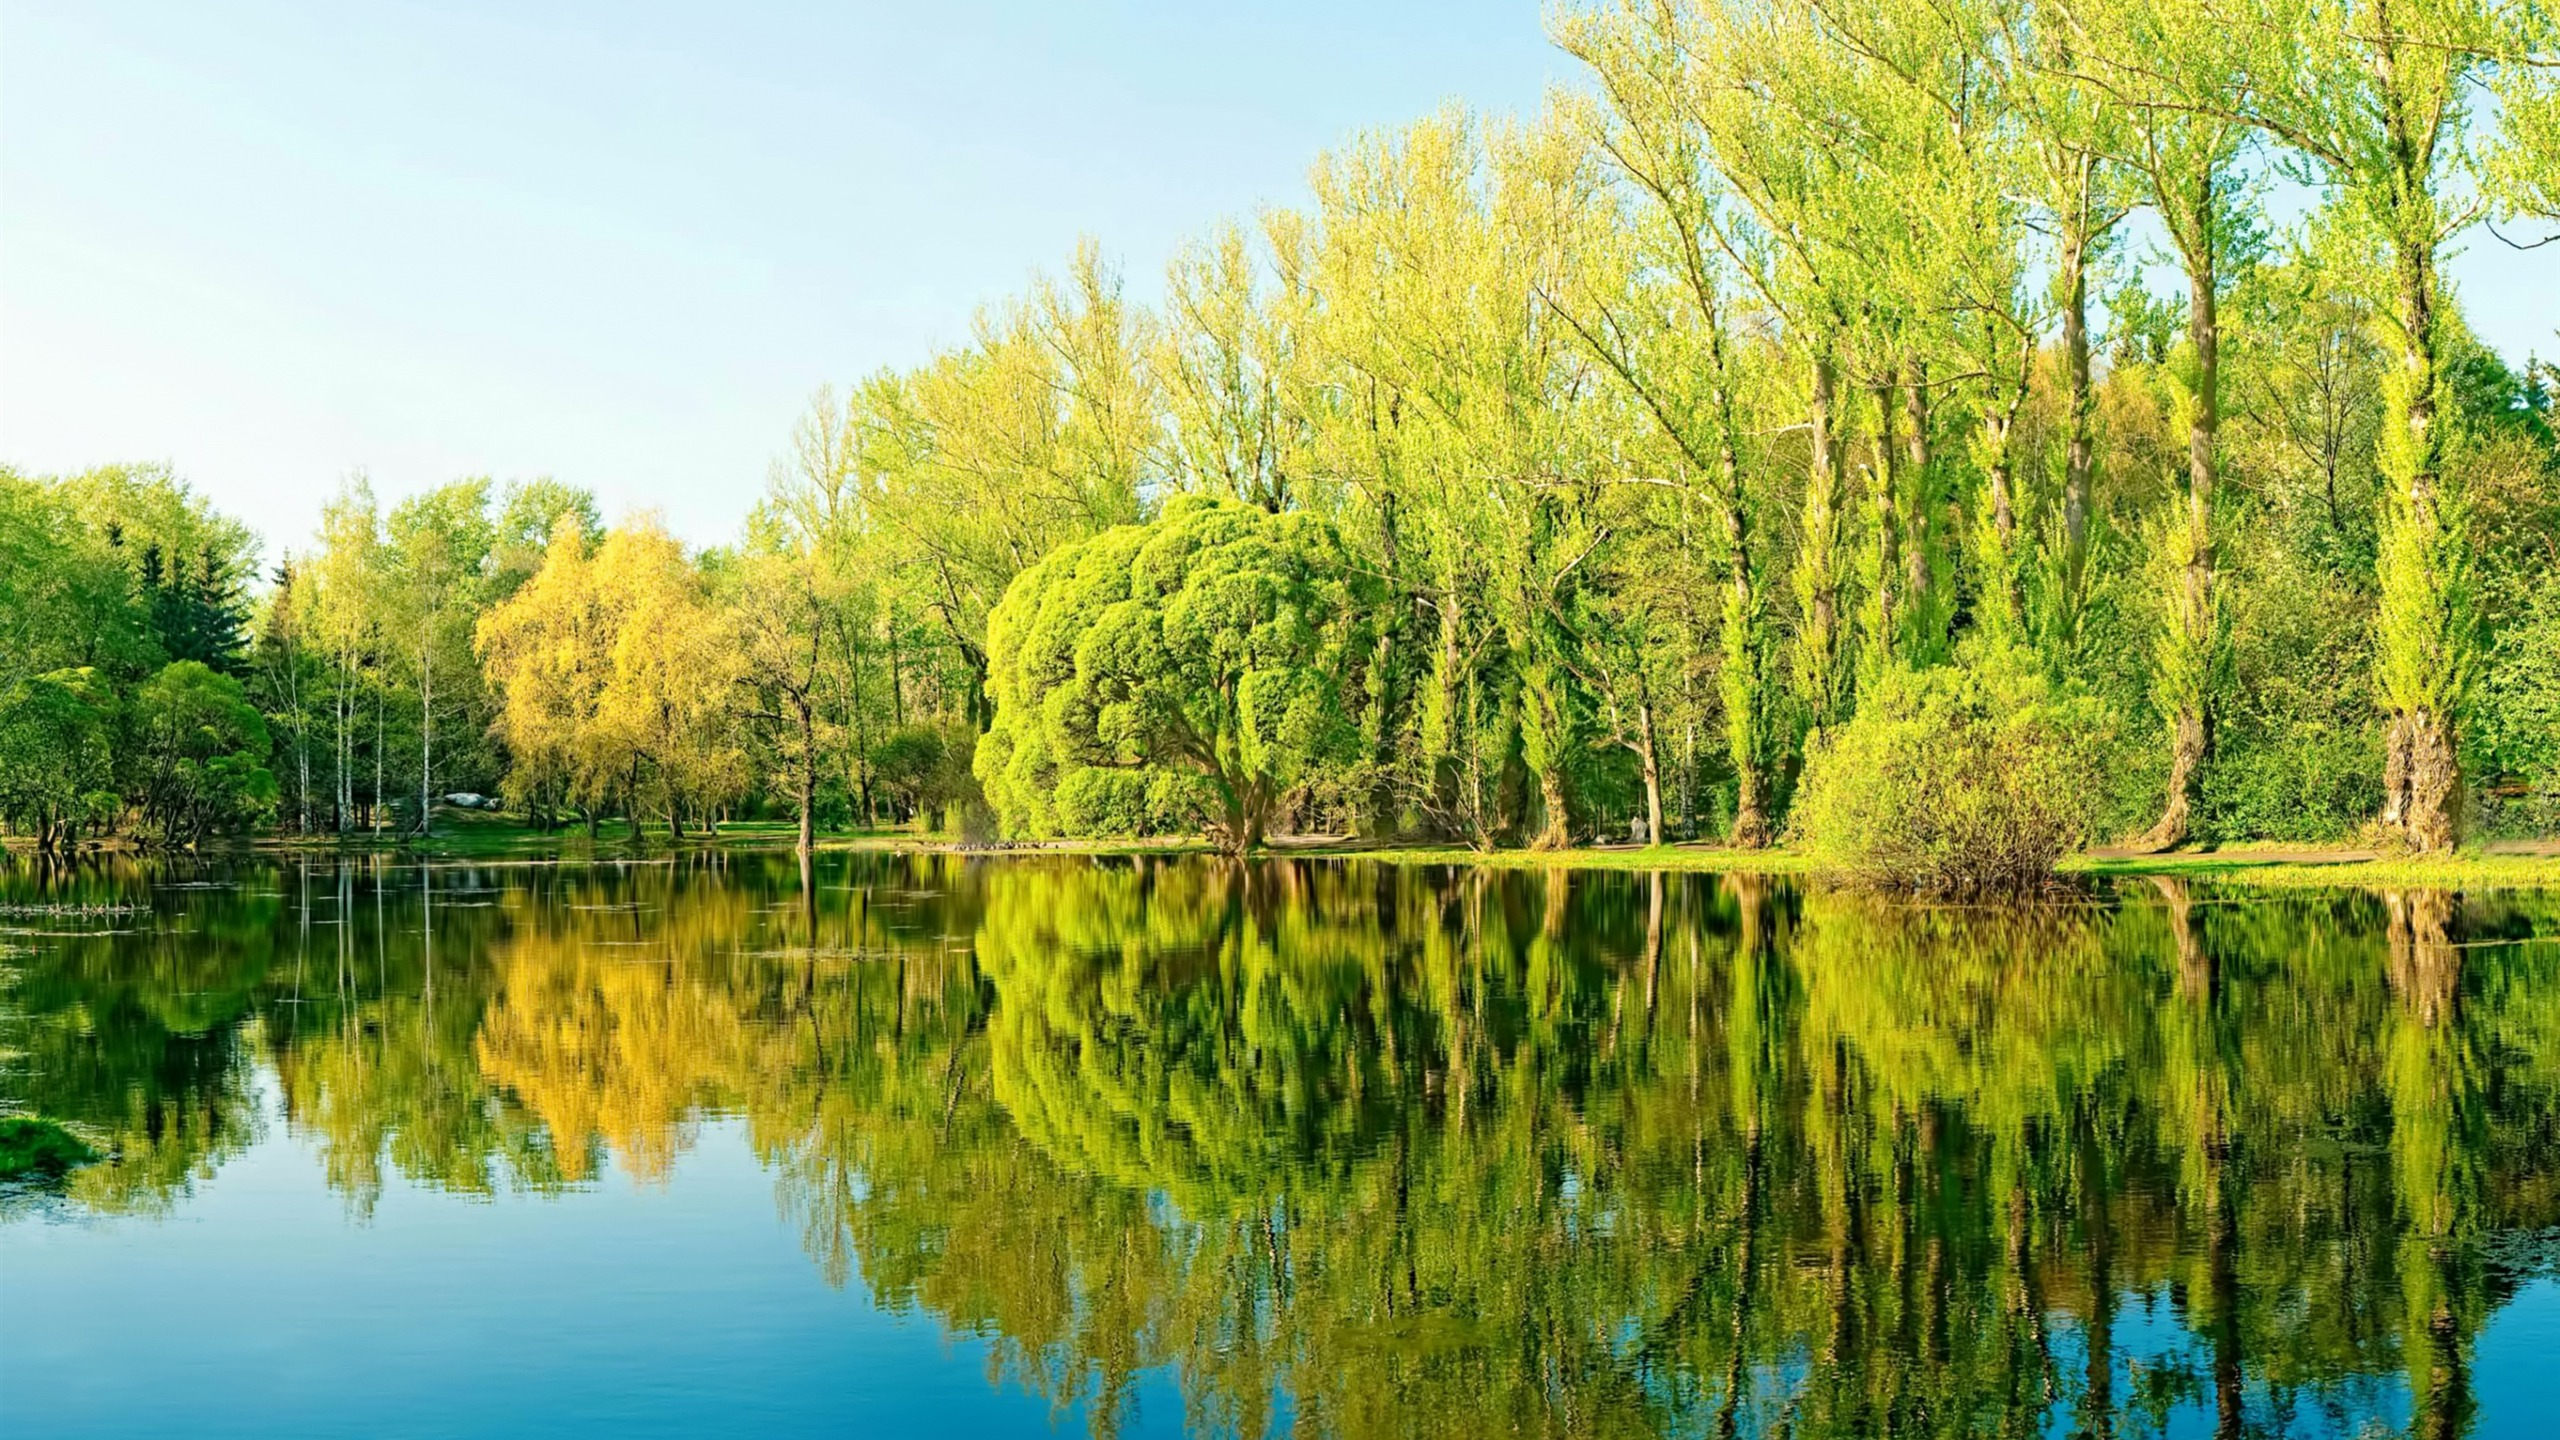 Forest summer sunshine trees lake reflection - 2560x1440 wallpaper download